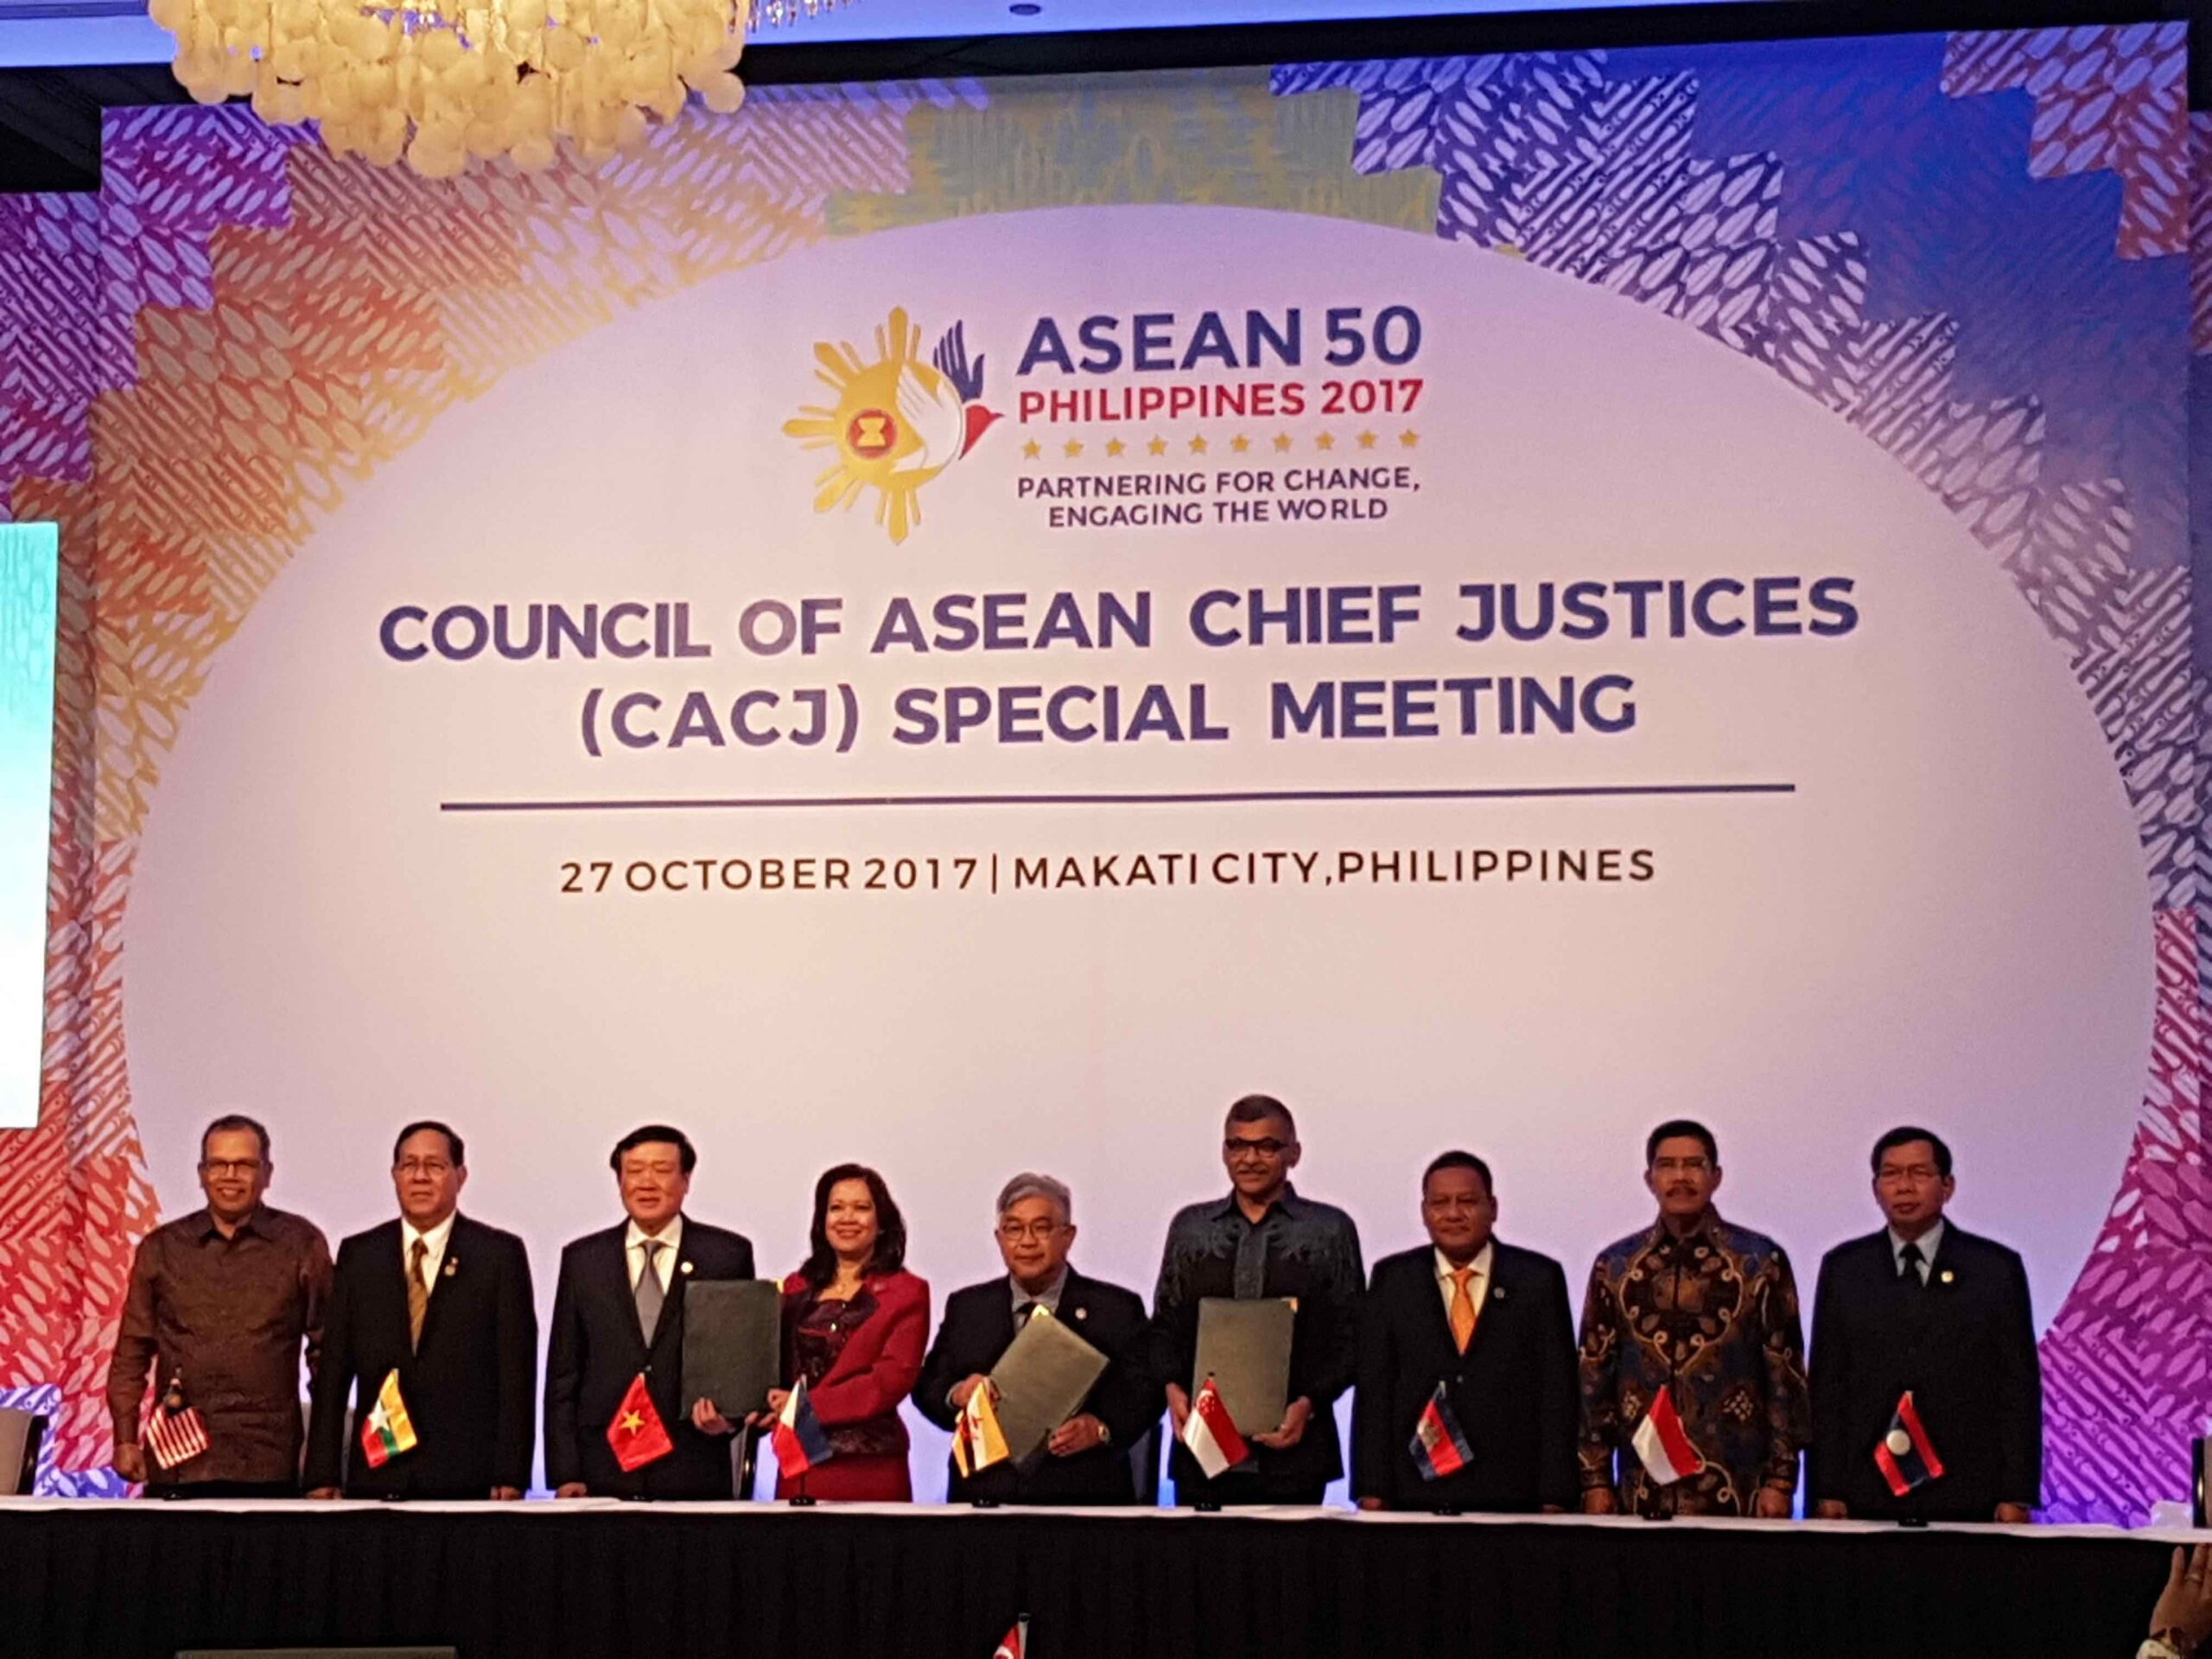 CACJ Special Meeting in Manila 2